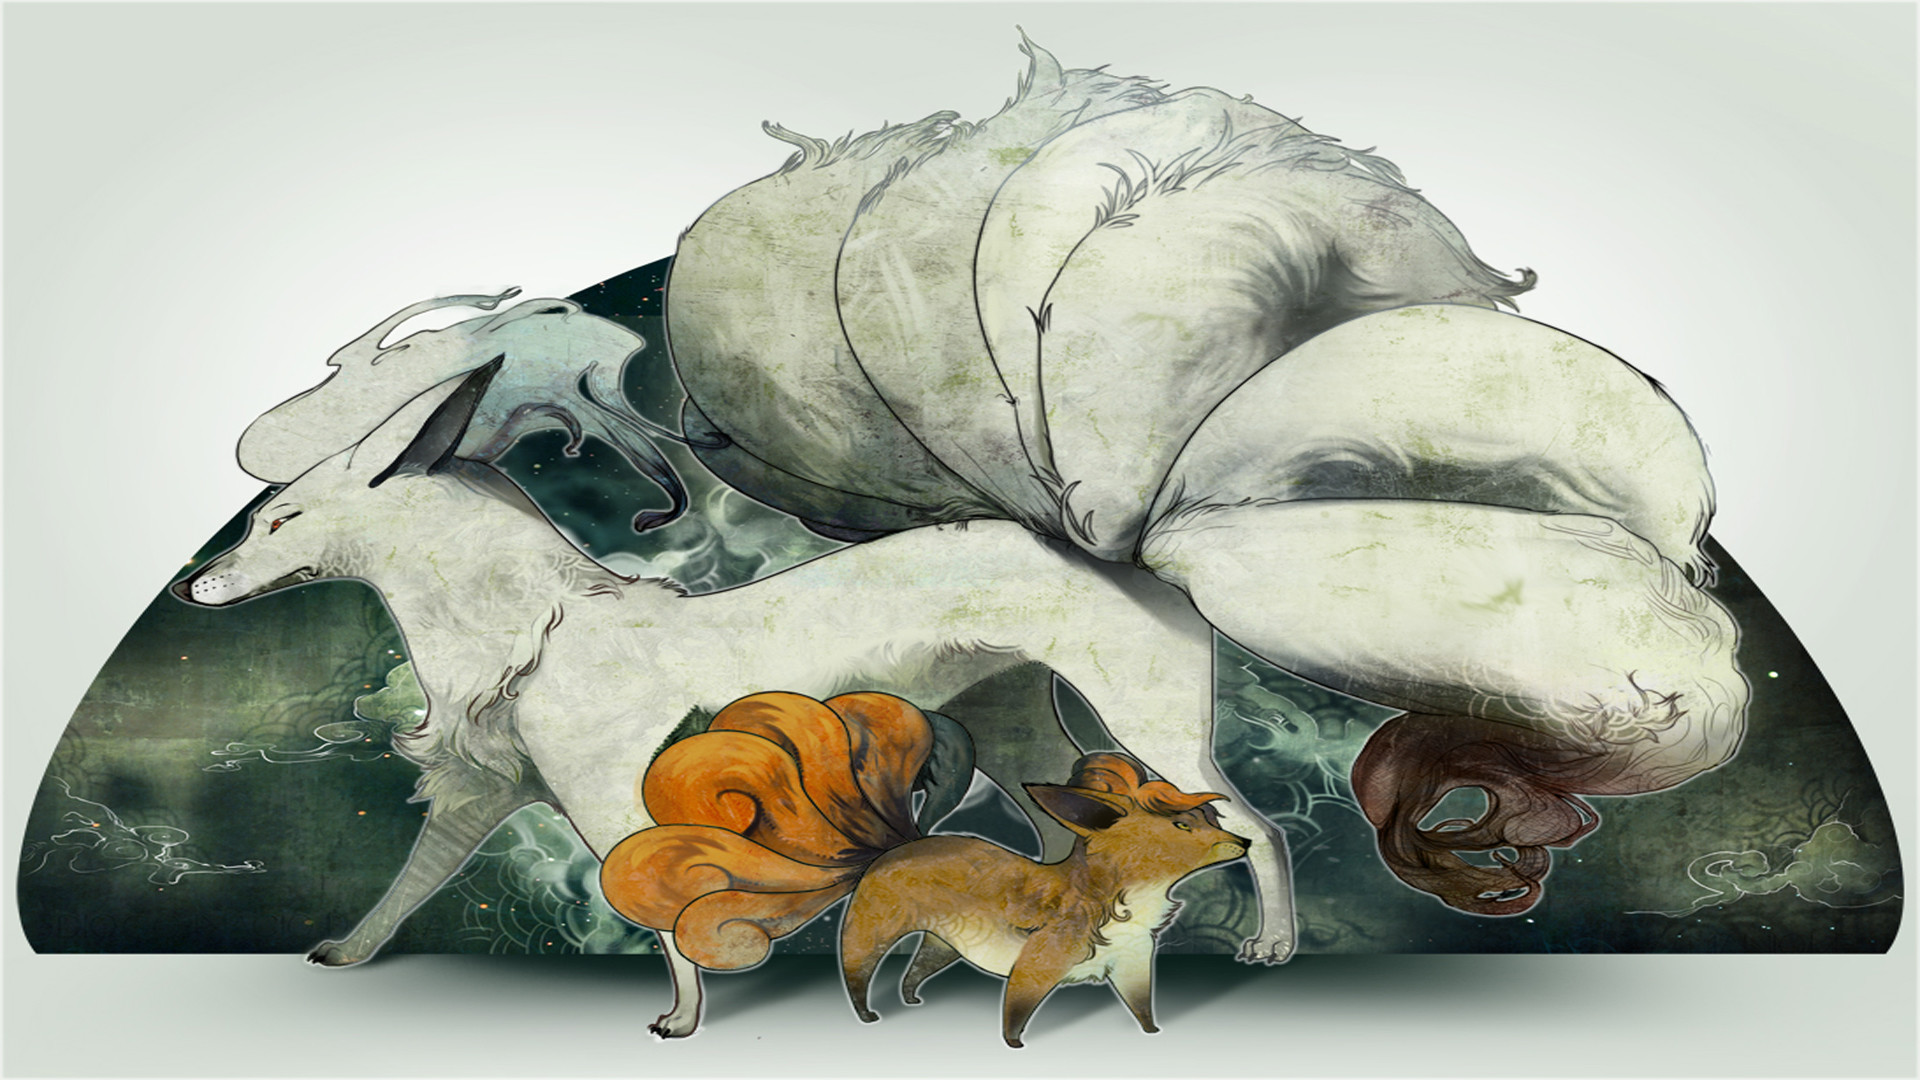 1920x1080 Pretty cool vulpix and ninetails wallpaper.